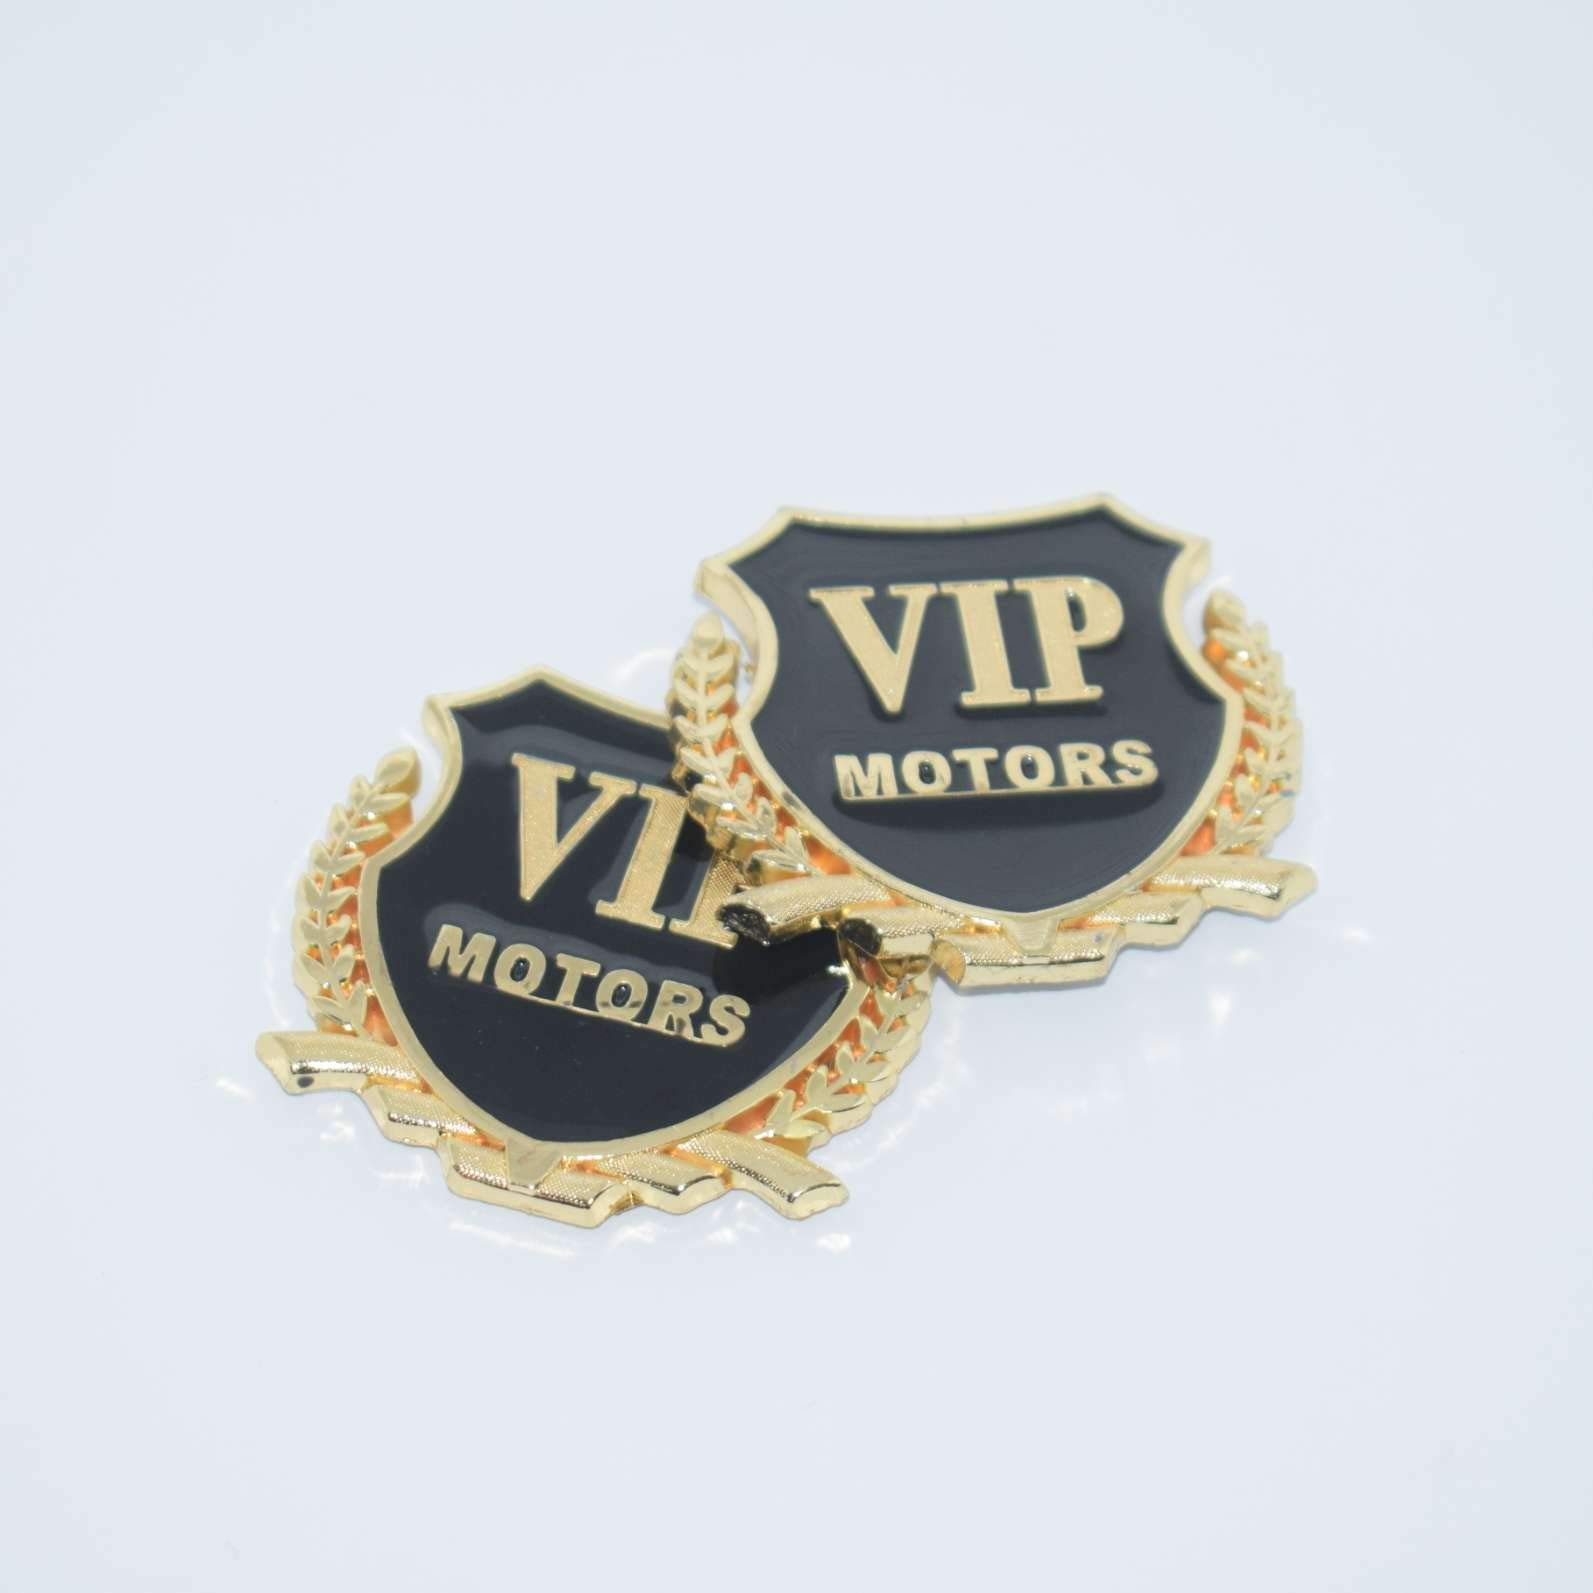 TOTUMY 2 Pieces 1335CH Vip Motors Silver Vip Class Chrome Metal Side Badge Emblem Mark For Pillar Post Trunk License Plate Etc Logo Auto Car Sticker Decal